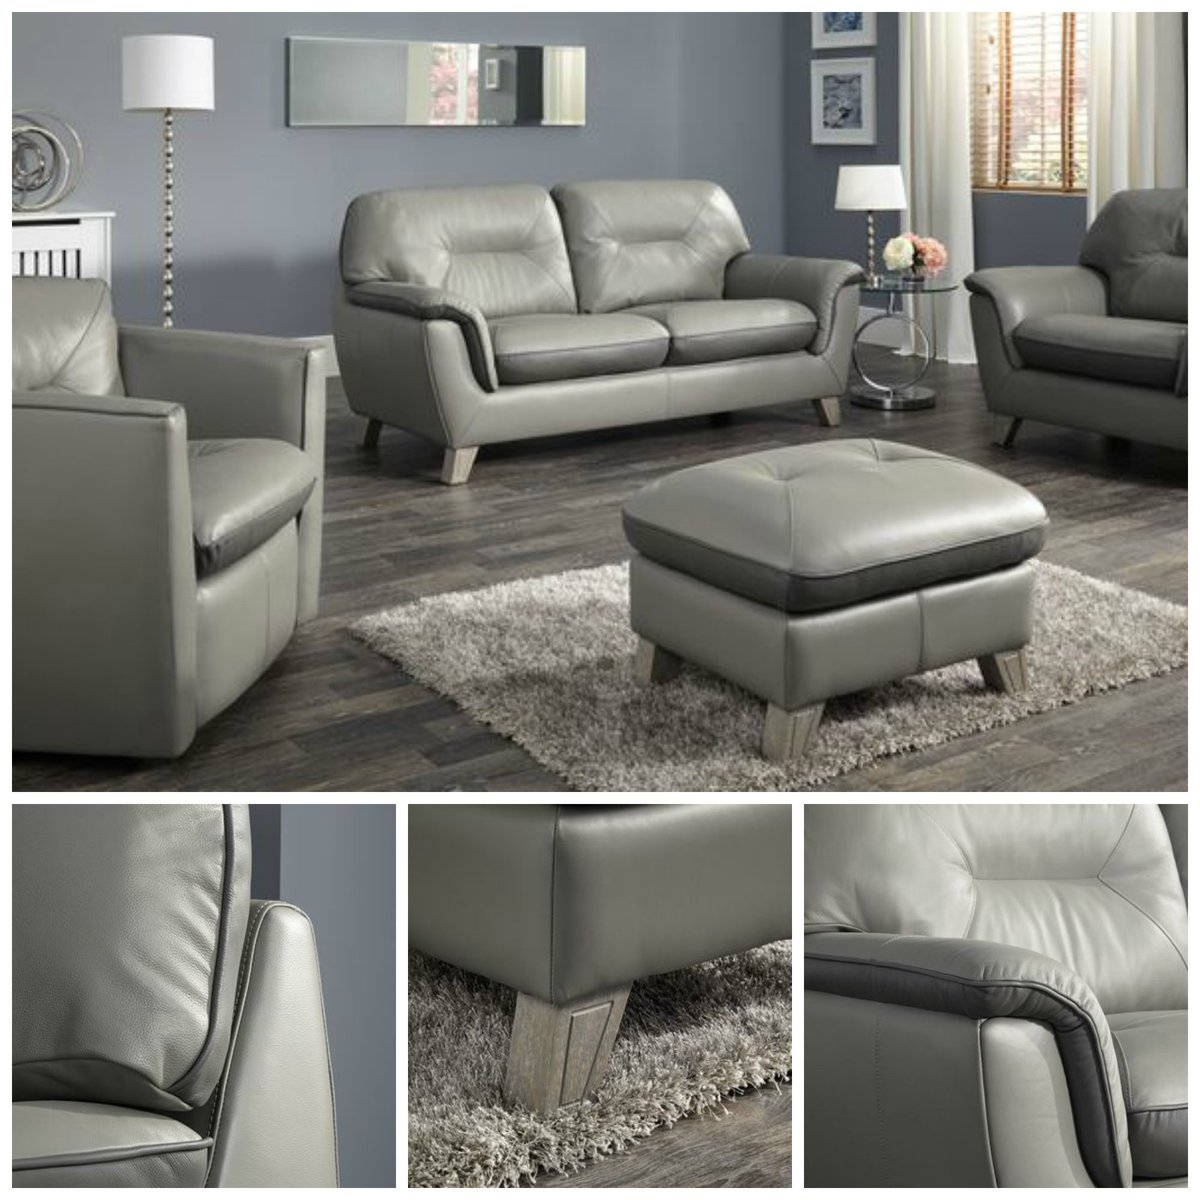 Scs Sofas On Twitter Save 600 This Modern Cloud 3 Seater Sofa In Our Gest Ever Double Now Only 599 Https T Co Mhhleamuwy